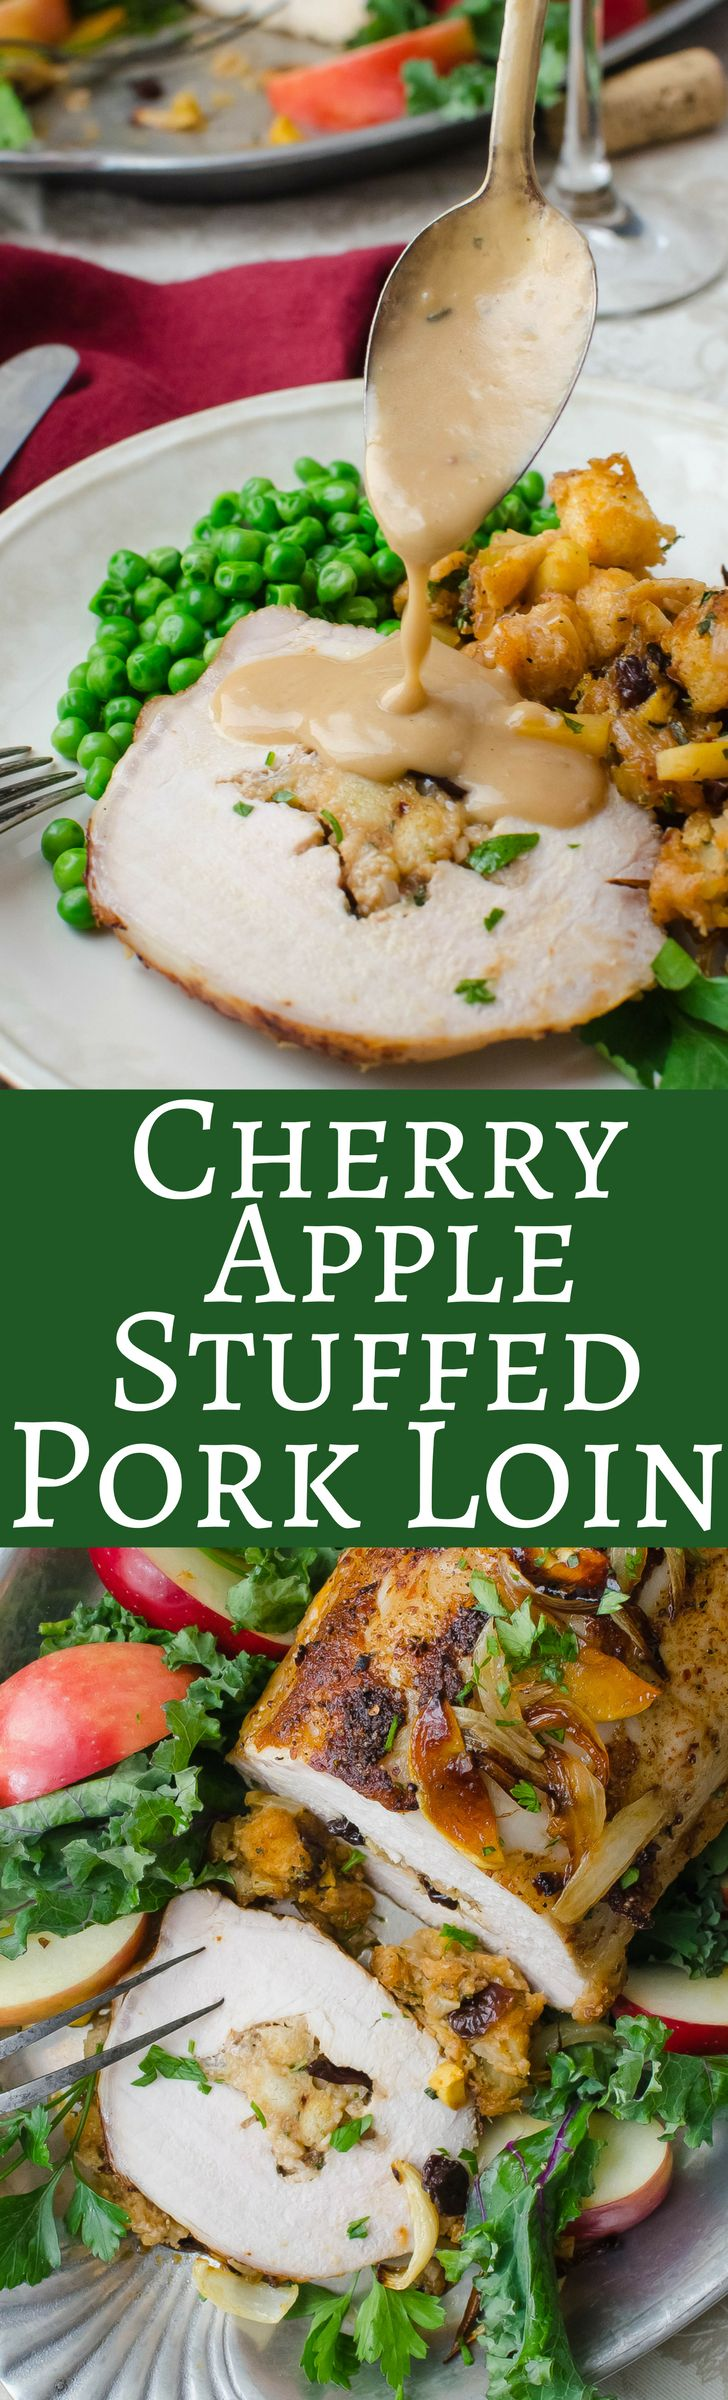 Cherry Apple Stuffed Pork Loin